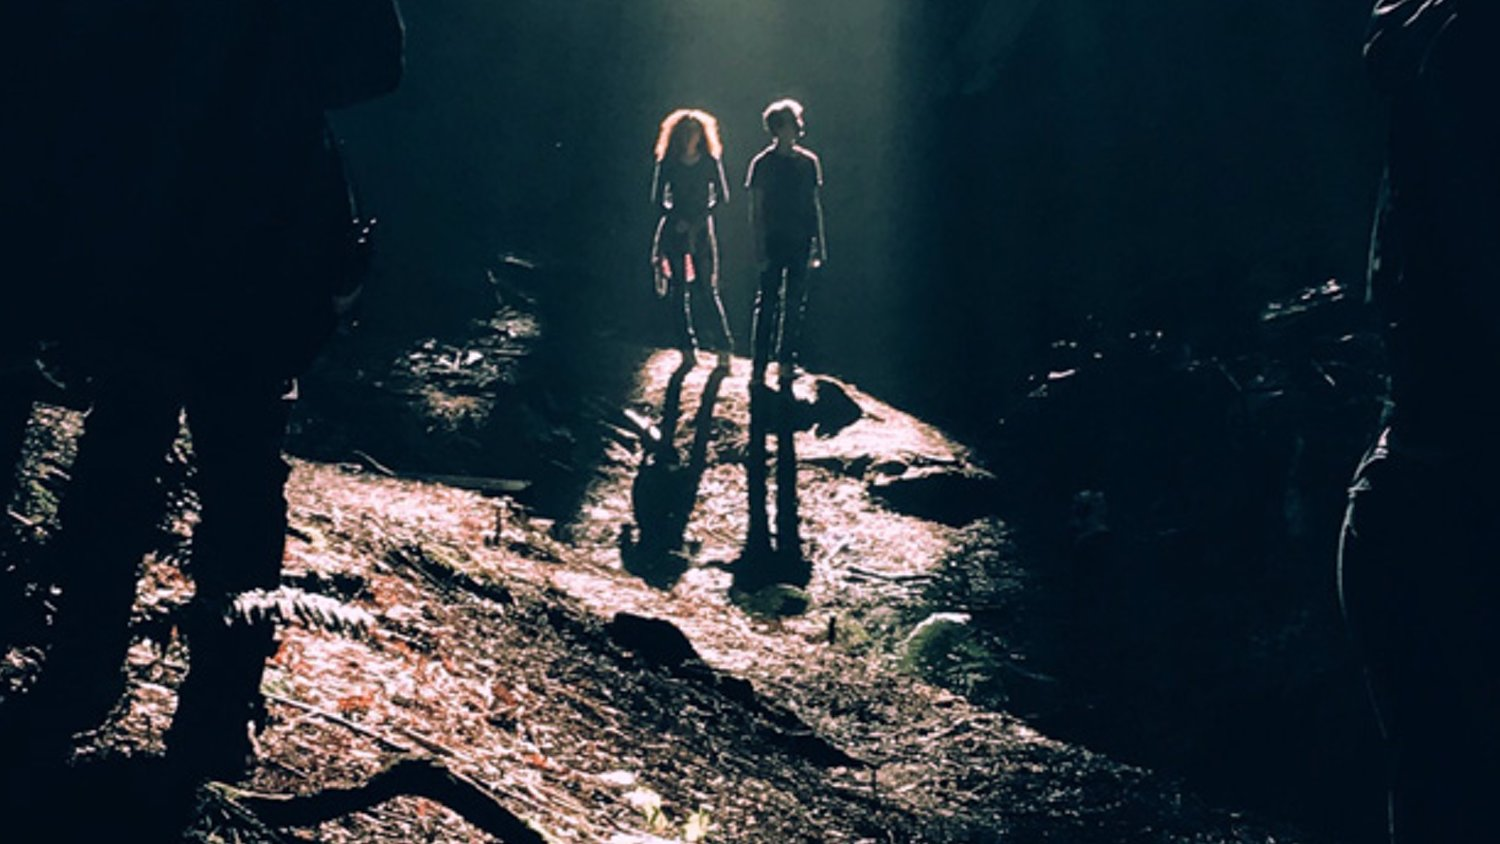 First Photos Emerge From Disney's A WRINKLE IN TIME